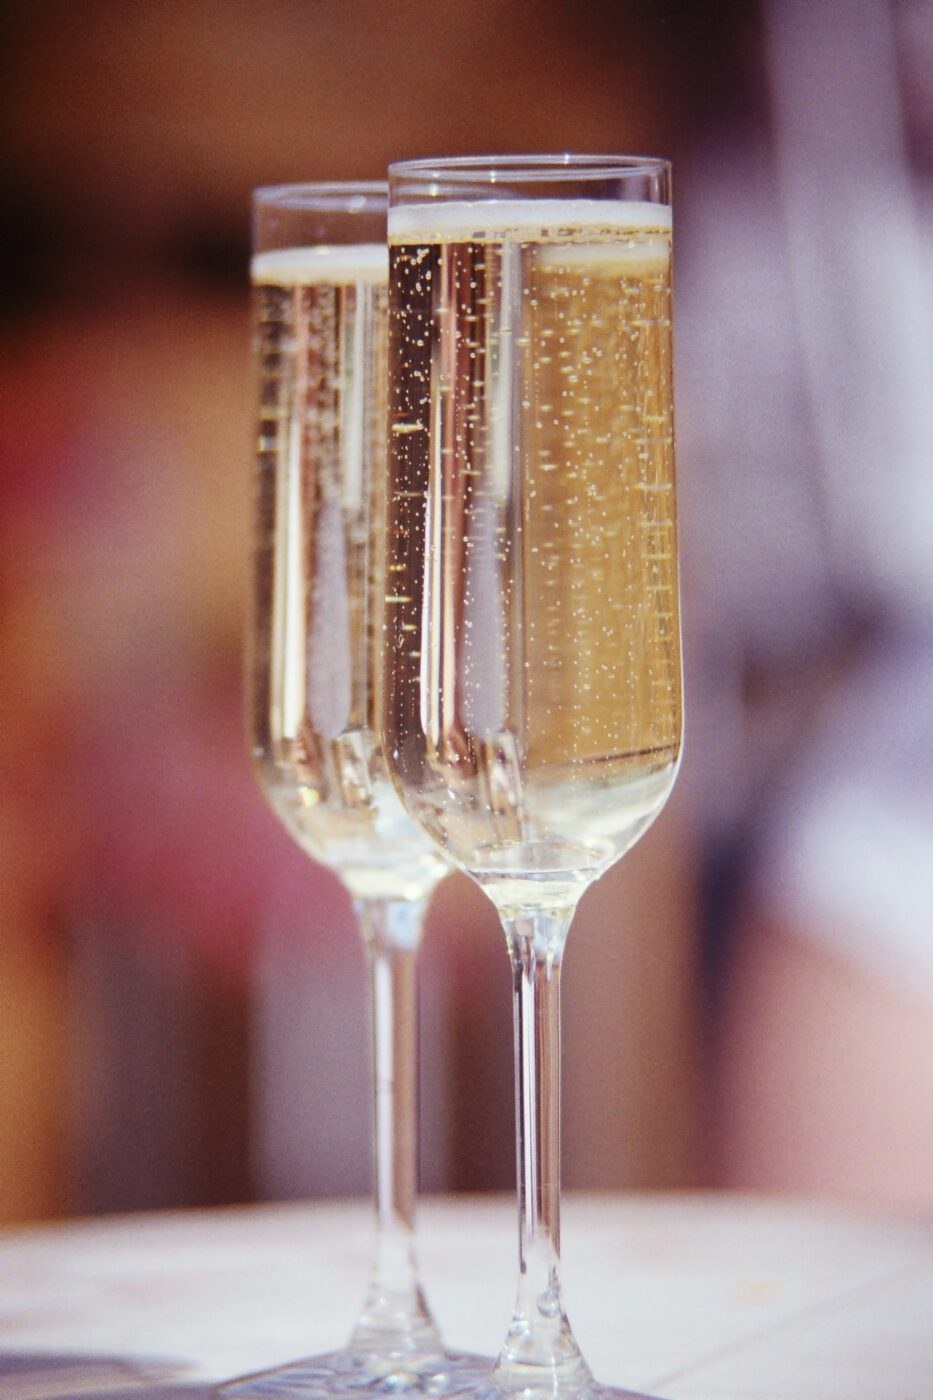 Prosecco - The wine with delicate tiny bubbles, and a light yellow tinge